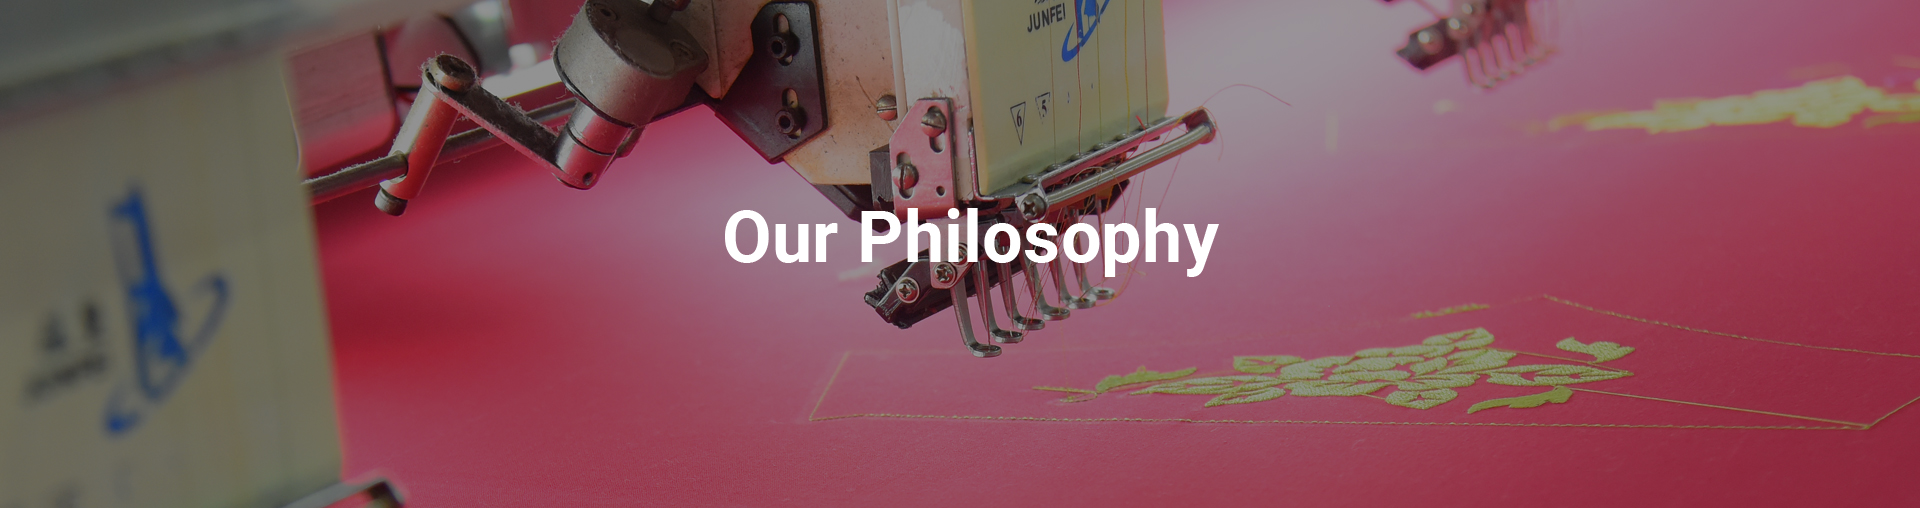 our philosophy-pommys